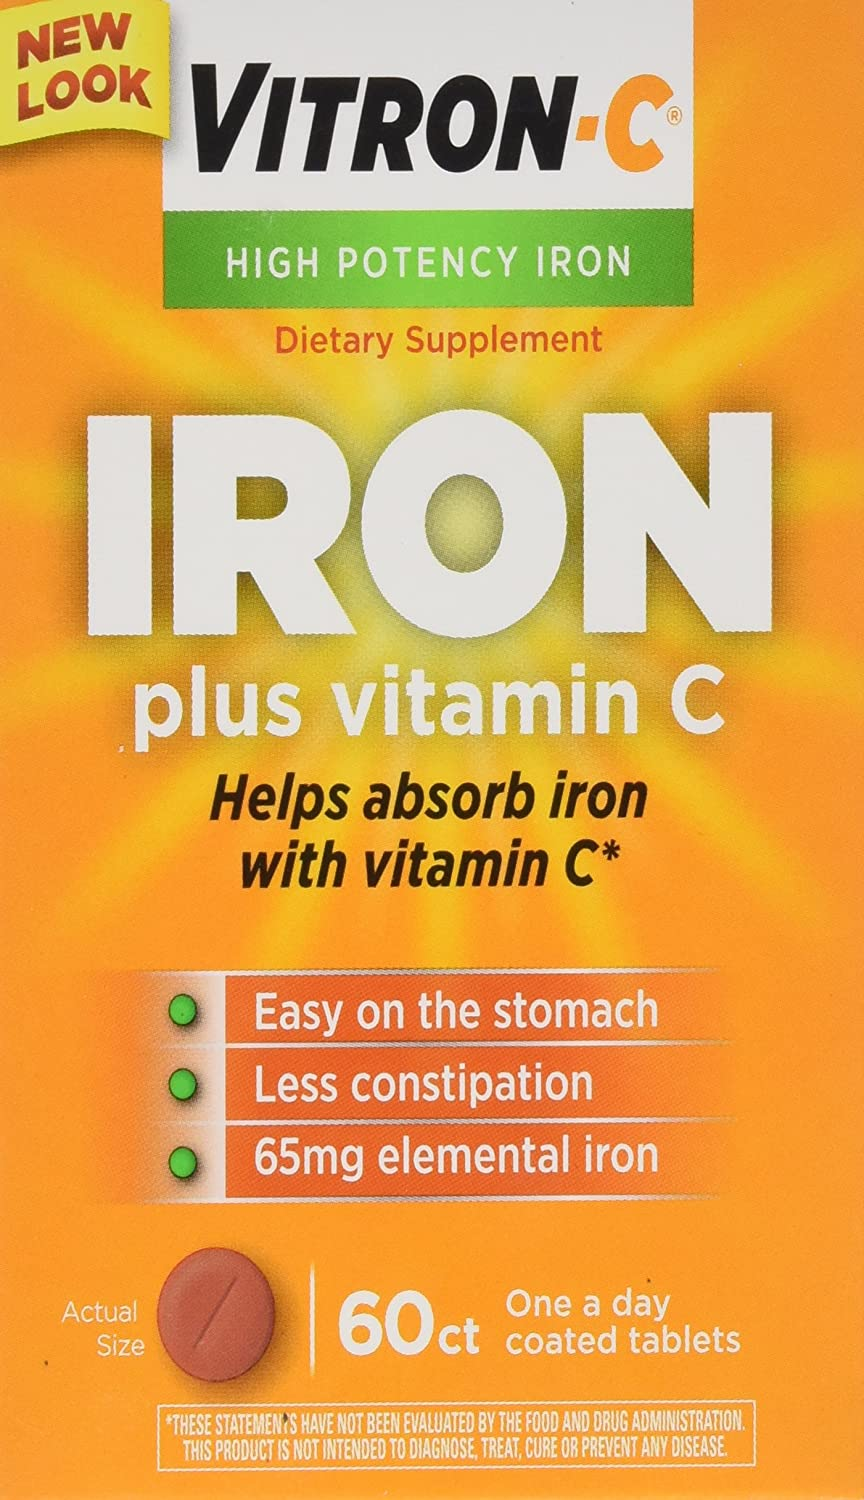 Amazon.com: Vitron-C High Potency Iron Supplement with Vitamin C, 60 Count: Health & Personal Care